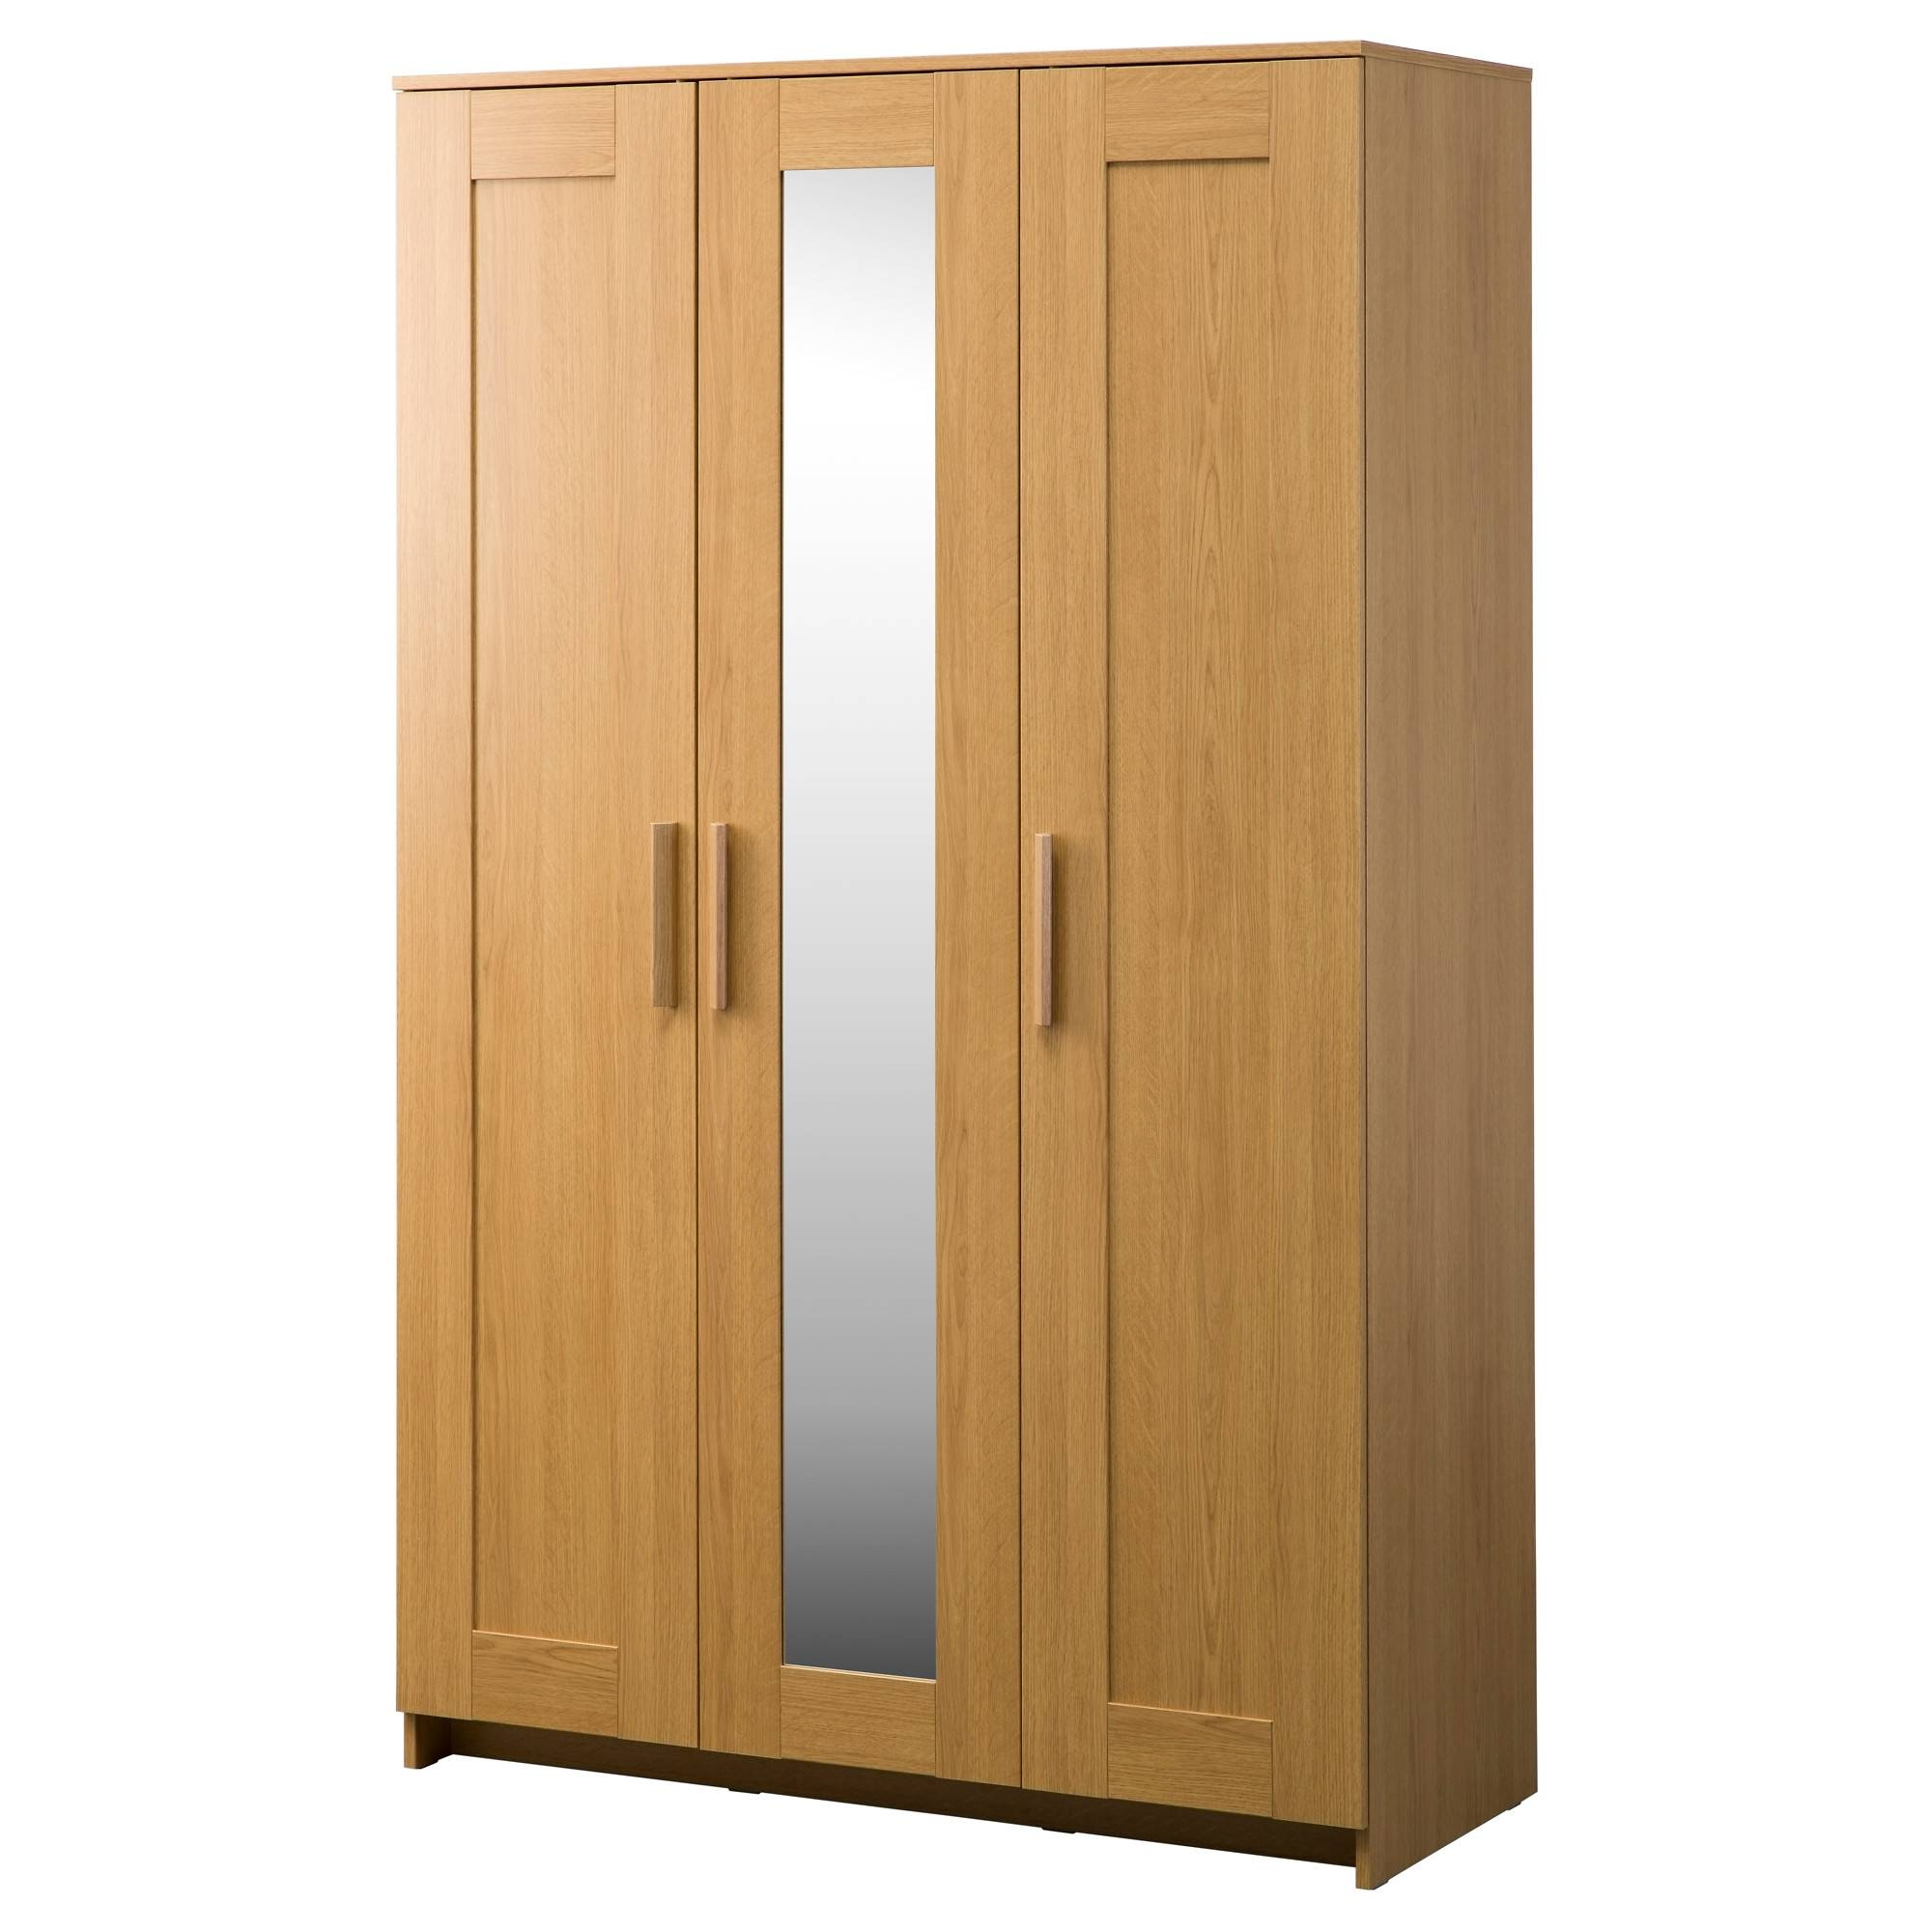 Wardrobes | Ikea With Regard To Self Assembly Wardrobes (View 15 of 15)